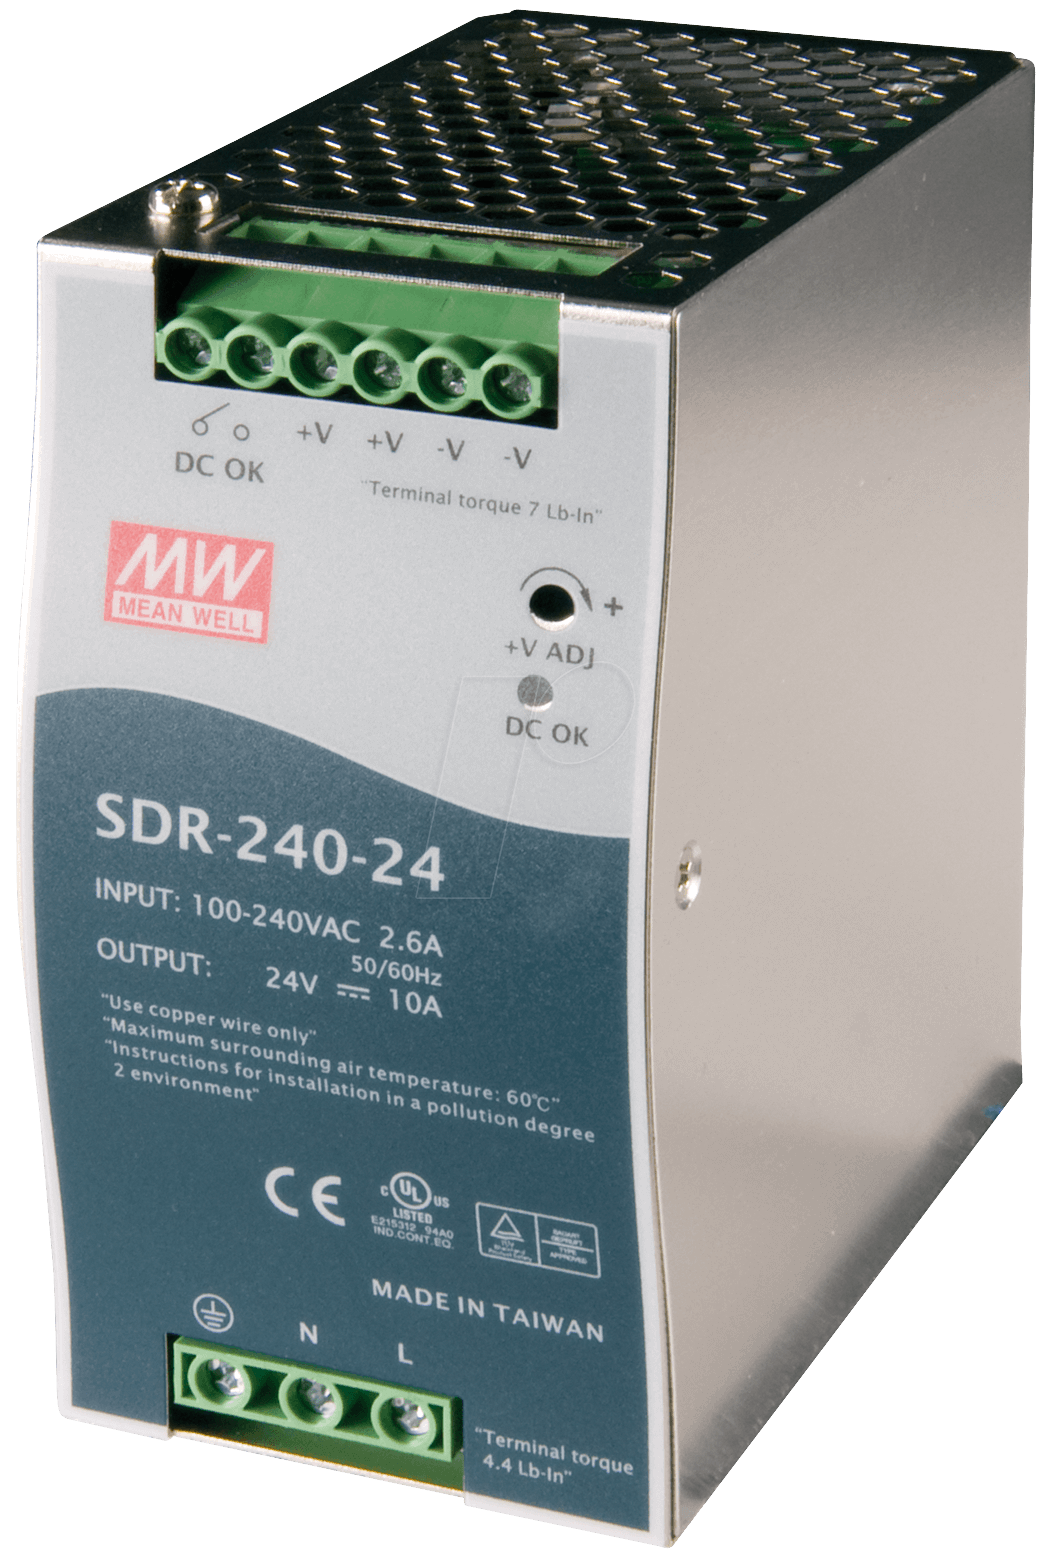 Mean Well SDR-240-24 Rail Power Supply